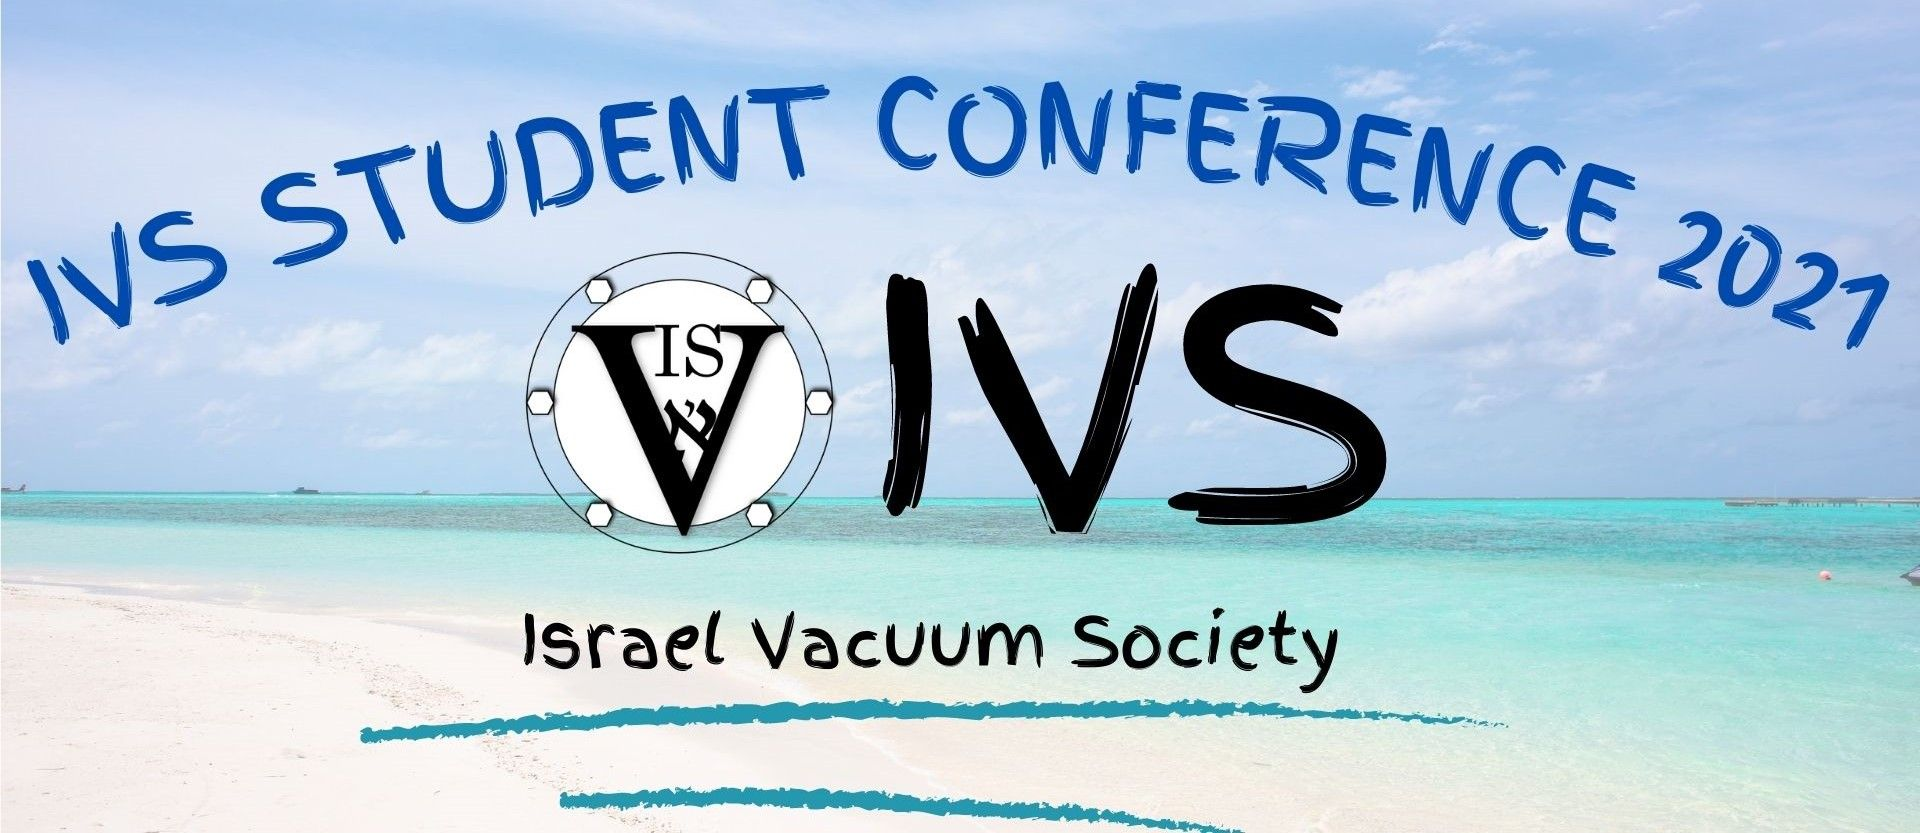 Professor Yury Gogotsi Will Be Giving The Closing Plenary Lecture For The IVS Student Conference